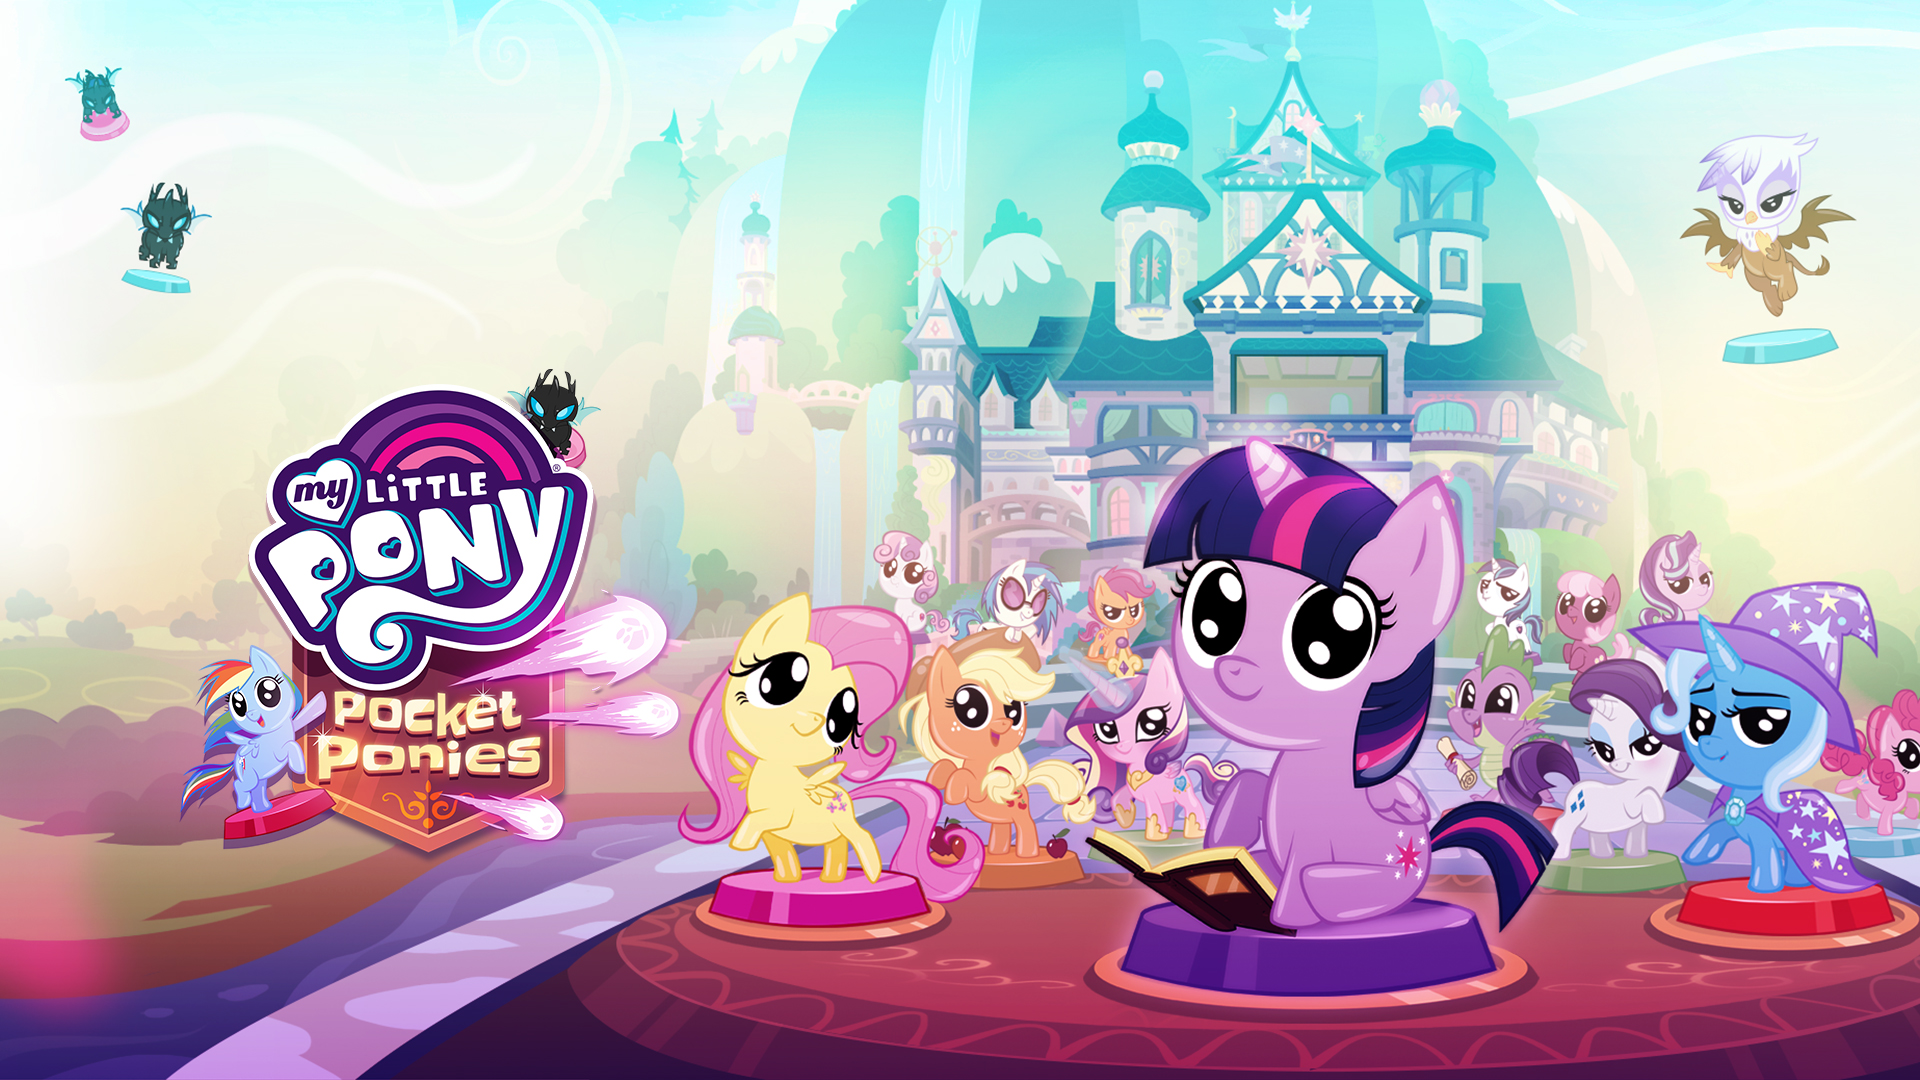 My Little Pony Pocket Ponies Budge Studios Mobile Apps For Kids